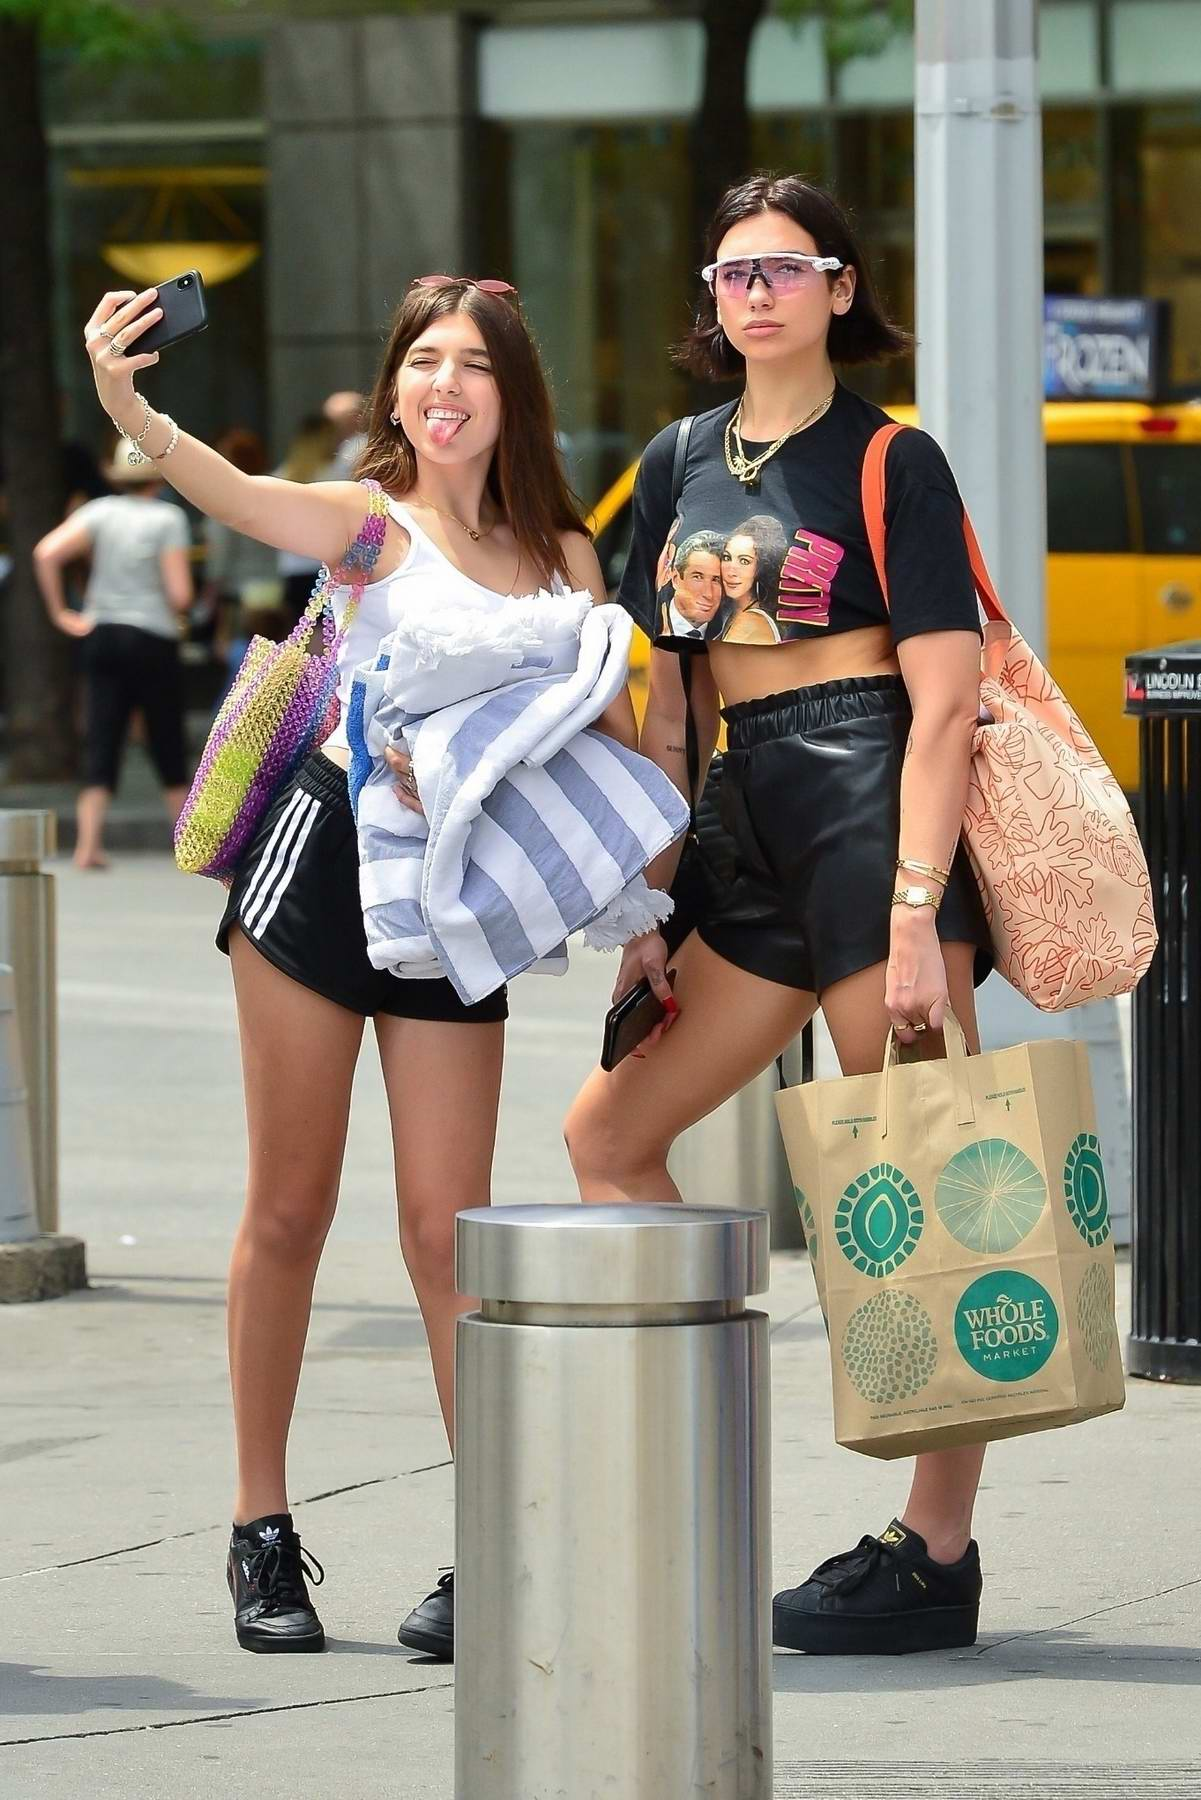 Dua Lipa have a picnic with sister Rina Lipa and friends at Central Park in New York City